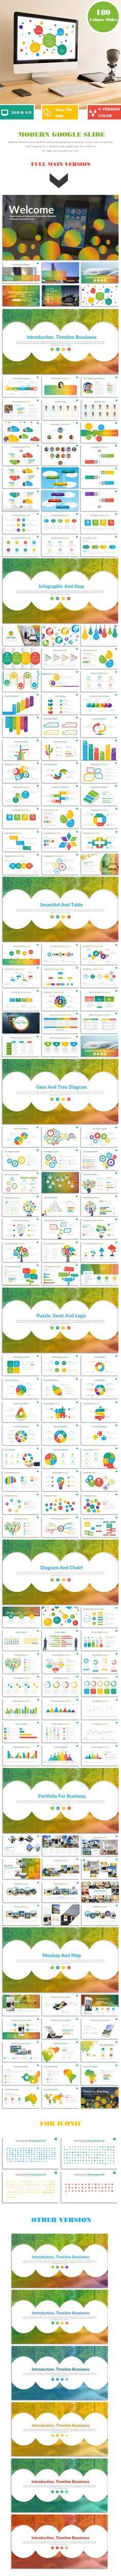 Modern google slide business presentation template for report and plan. Download here: http://graphicriver.net/item/modern-google-slide-business-presentation-template-for-report-and-plan/16262014?ref=ksioks